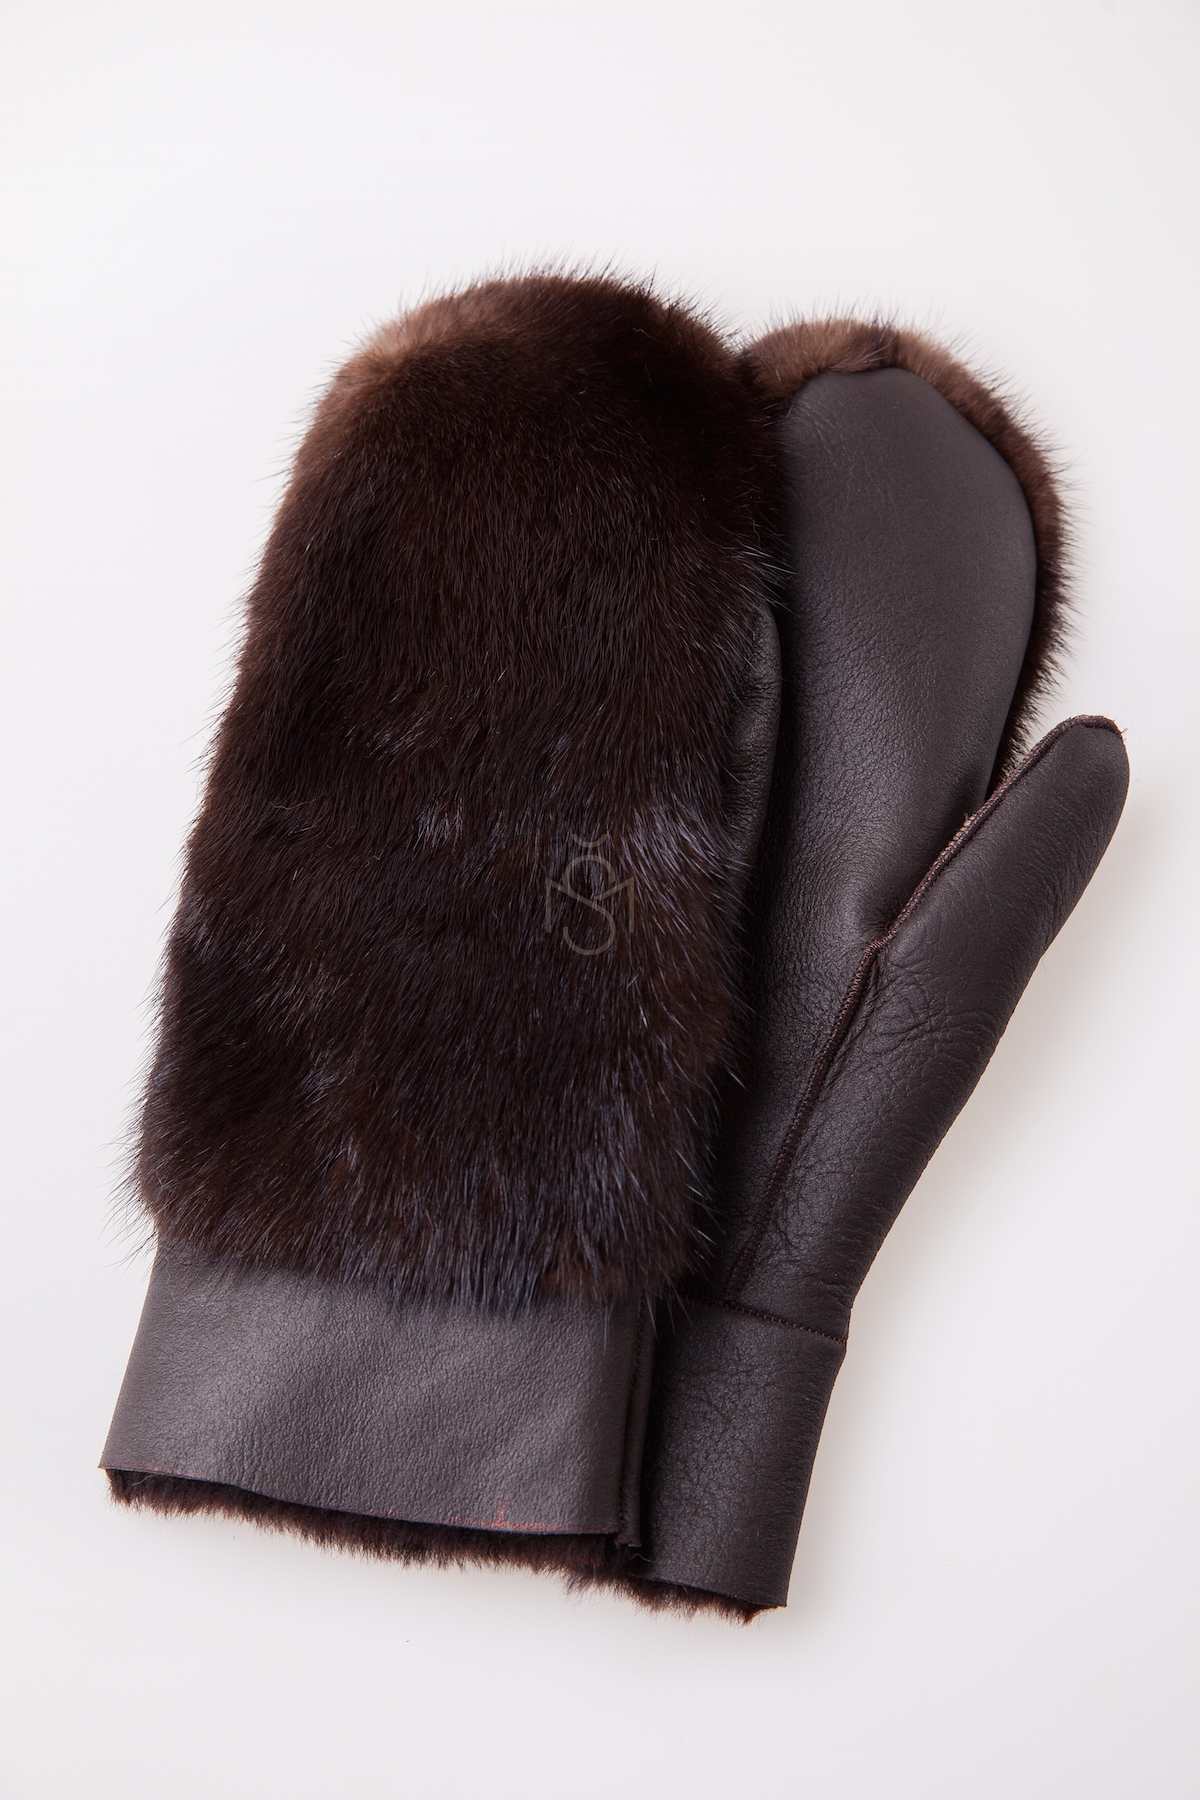 Sheepskin mittens with mink fur, color - natural brown, made by Silta Mada fur studio in Vilnius